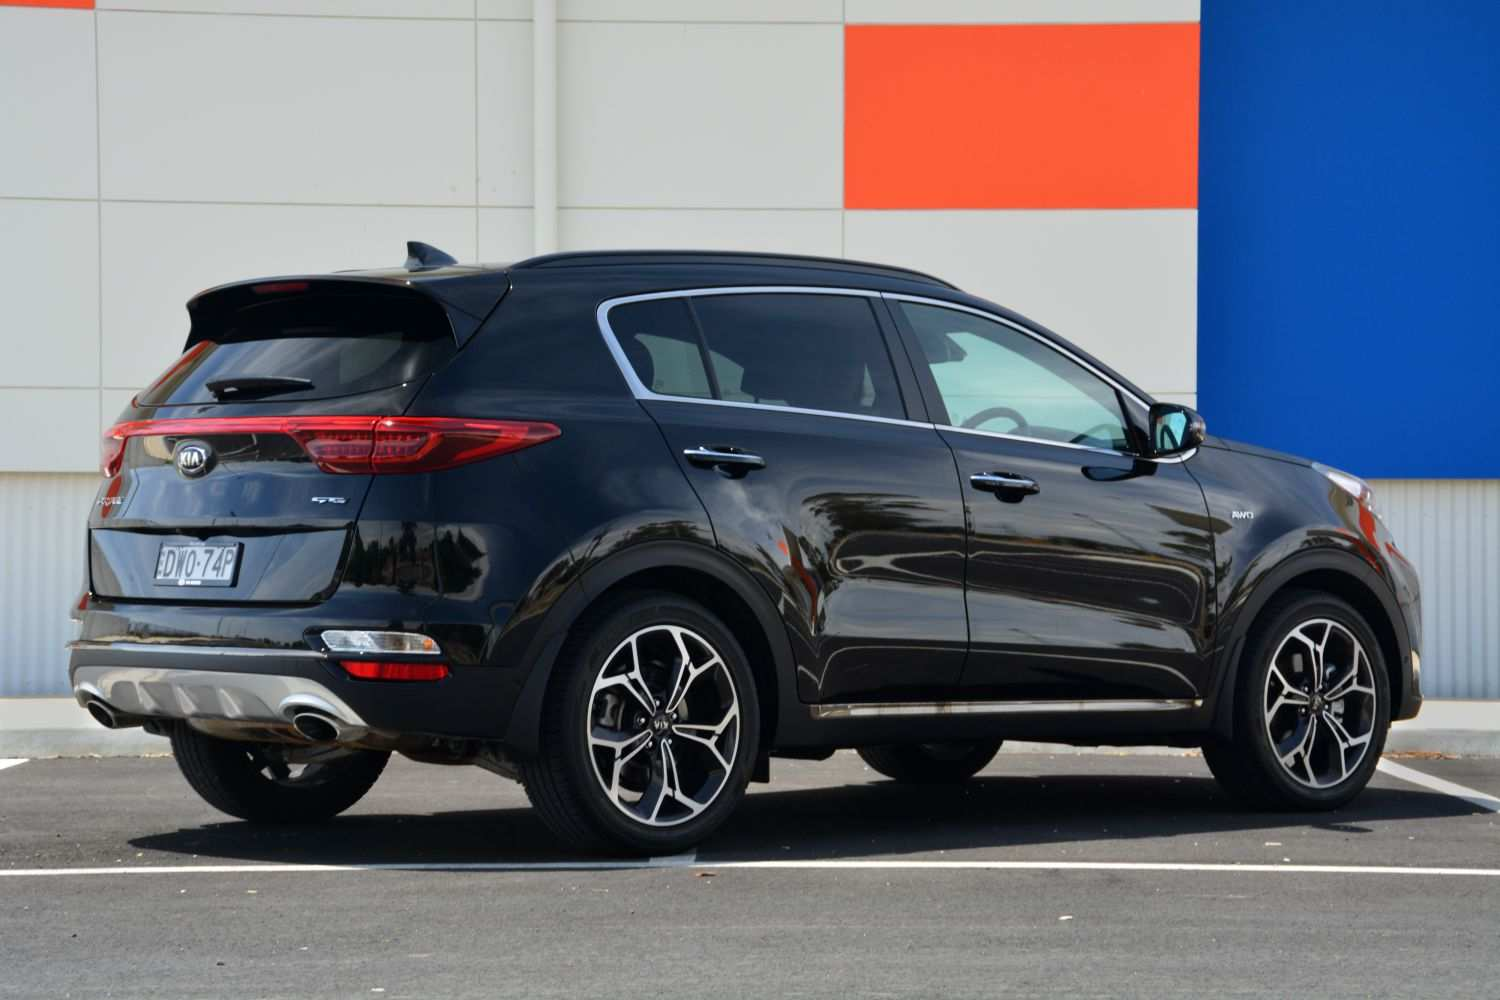 65 The Best Kia Sportage Gt Line 2019 Pictures